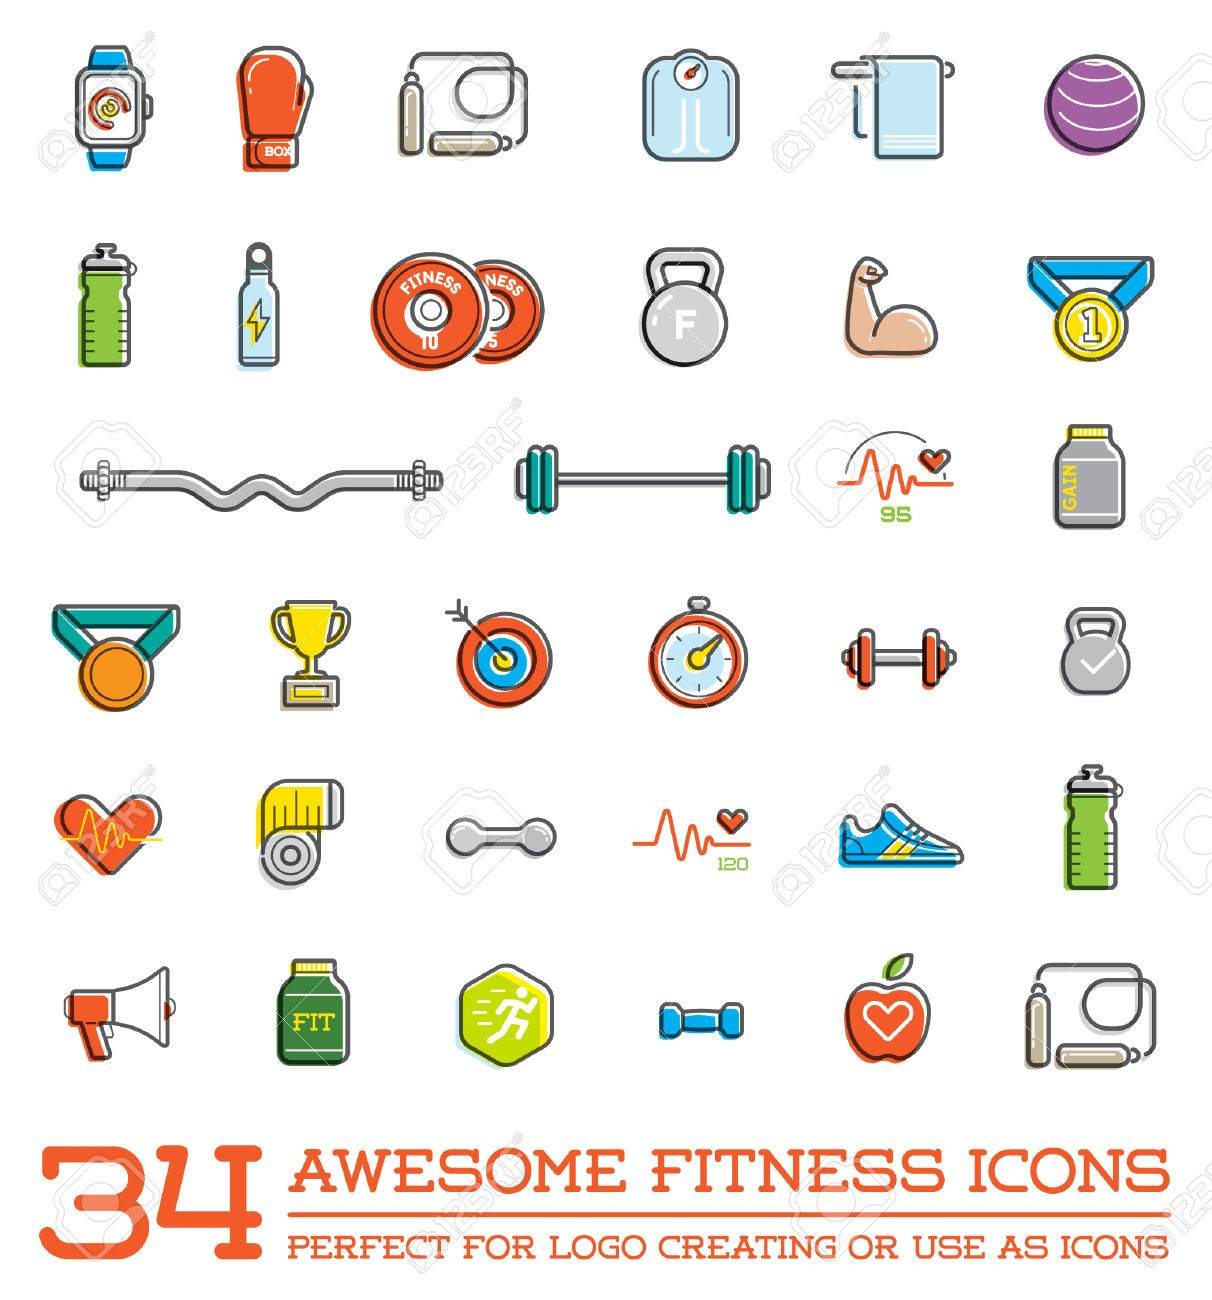 Set of Fitness Aerobics Gym Elements and Fitness Icons Illustration - 50252723